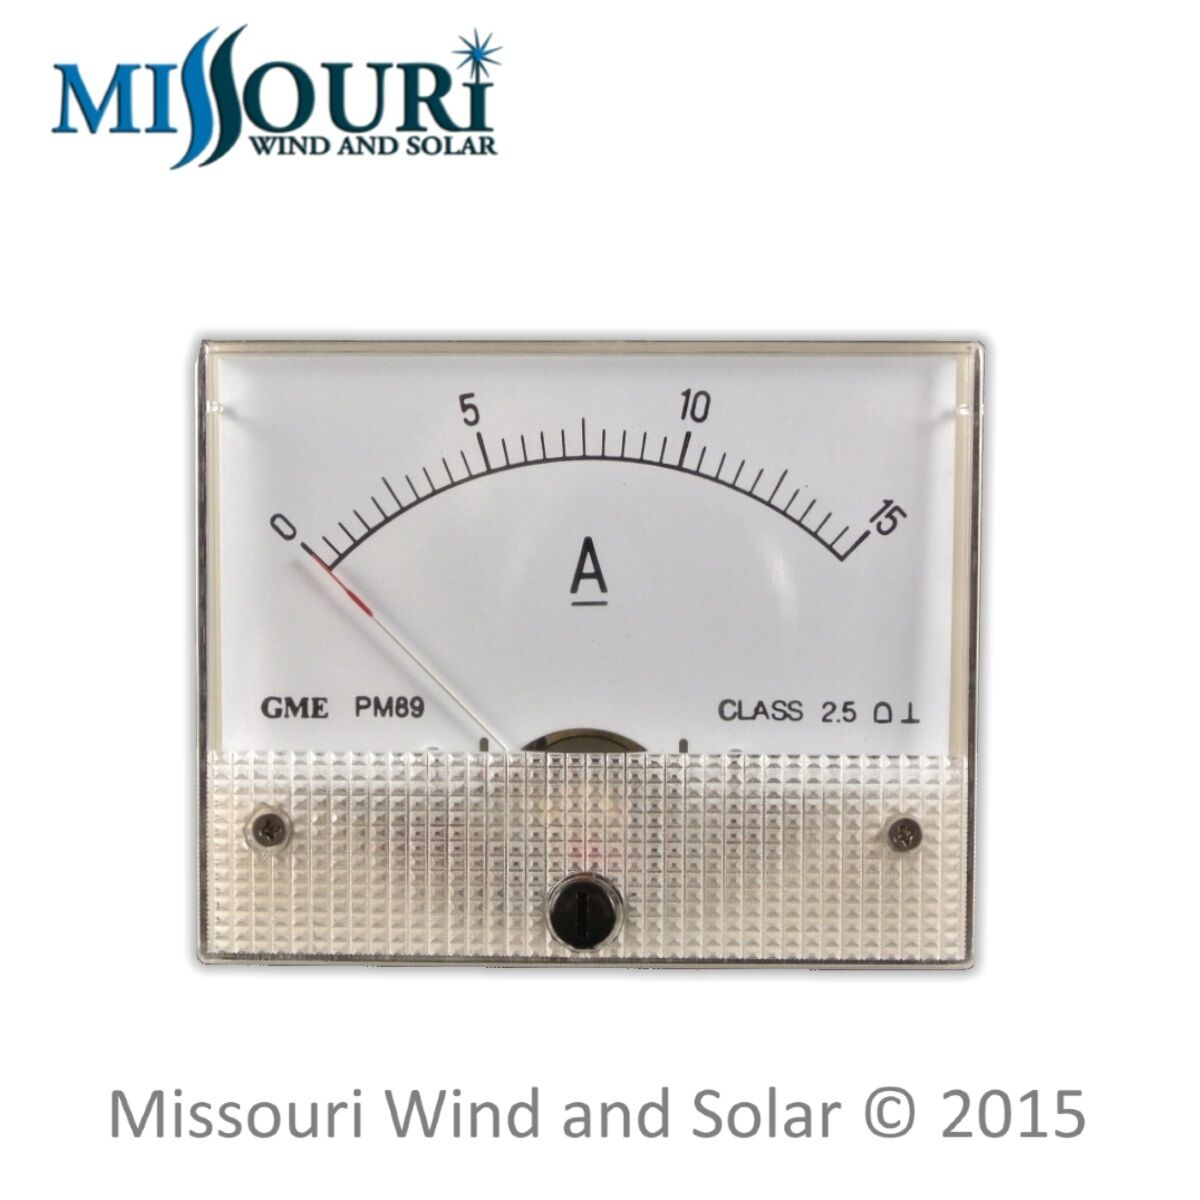 Dc 15 Amp Analog Meter For Wind Turbine Generators And Solar Panels Power From Or Panel To House Wiring Missouri